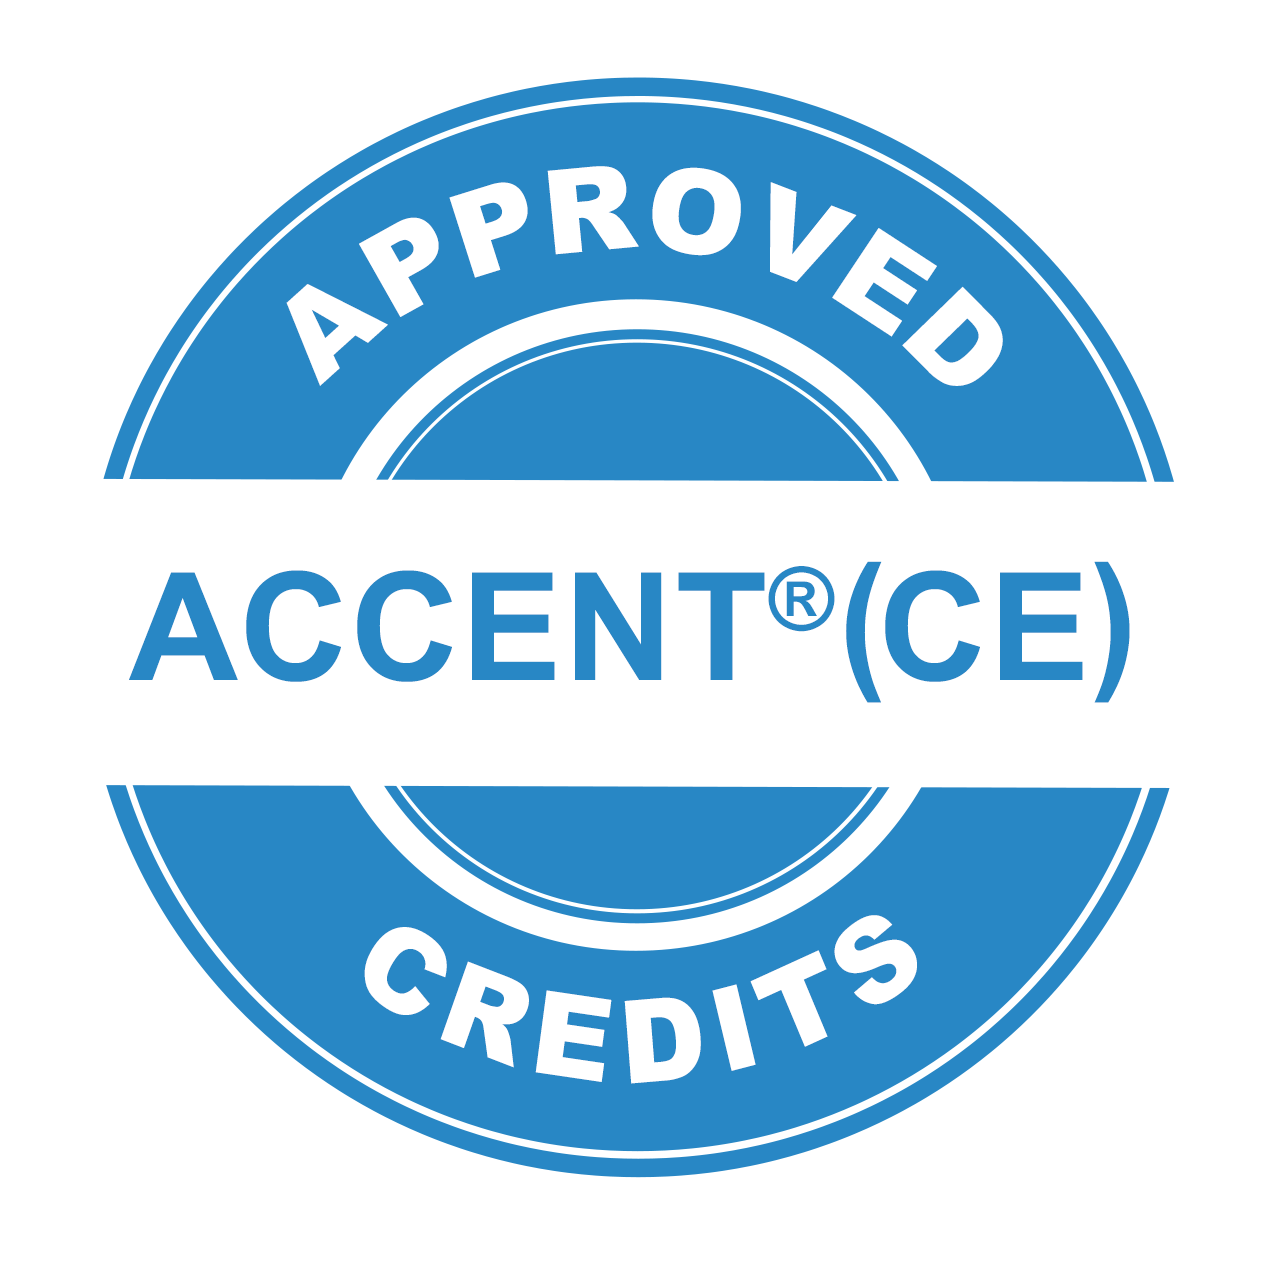 CE Accent Program - AACC Lab Tests Online CE Credits for Web